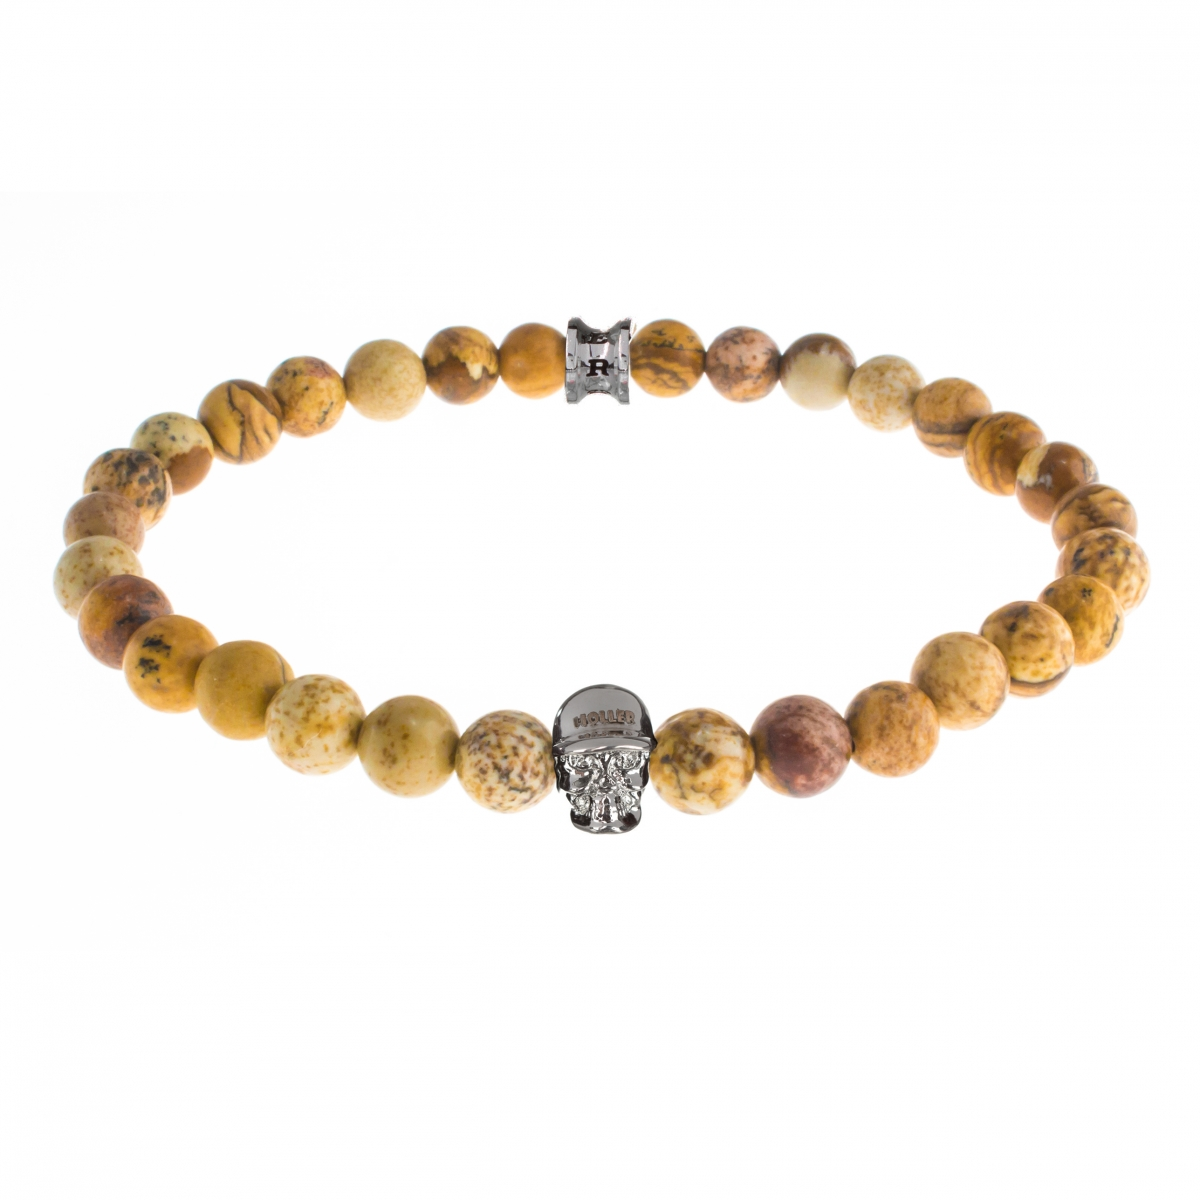 Jefferson 6mm Beige Jasper Stone Bracelet